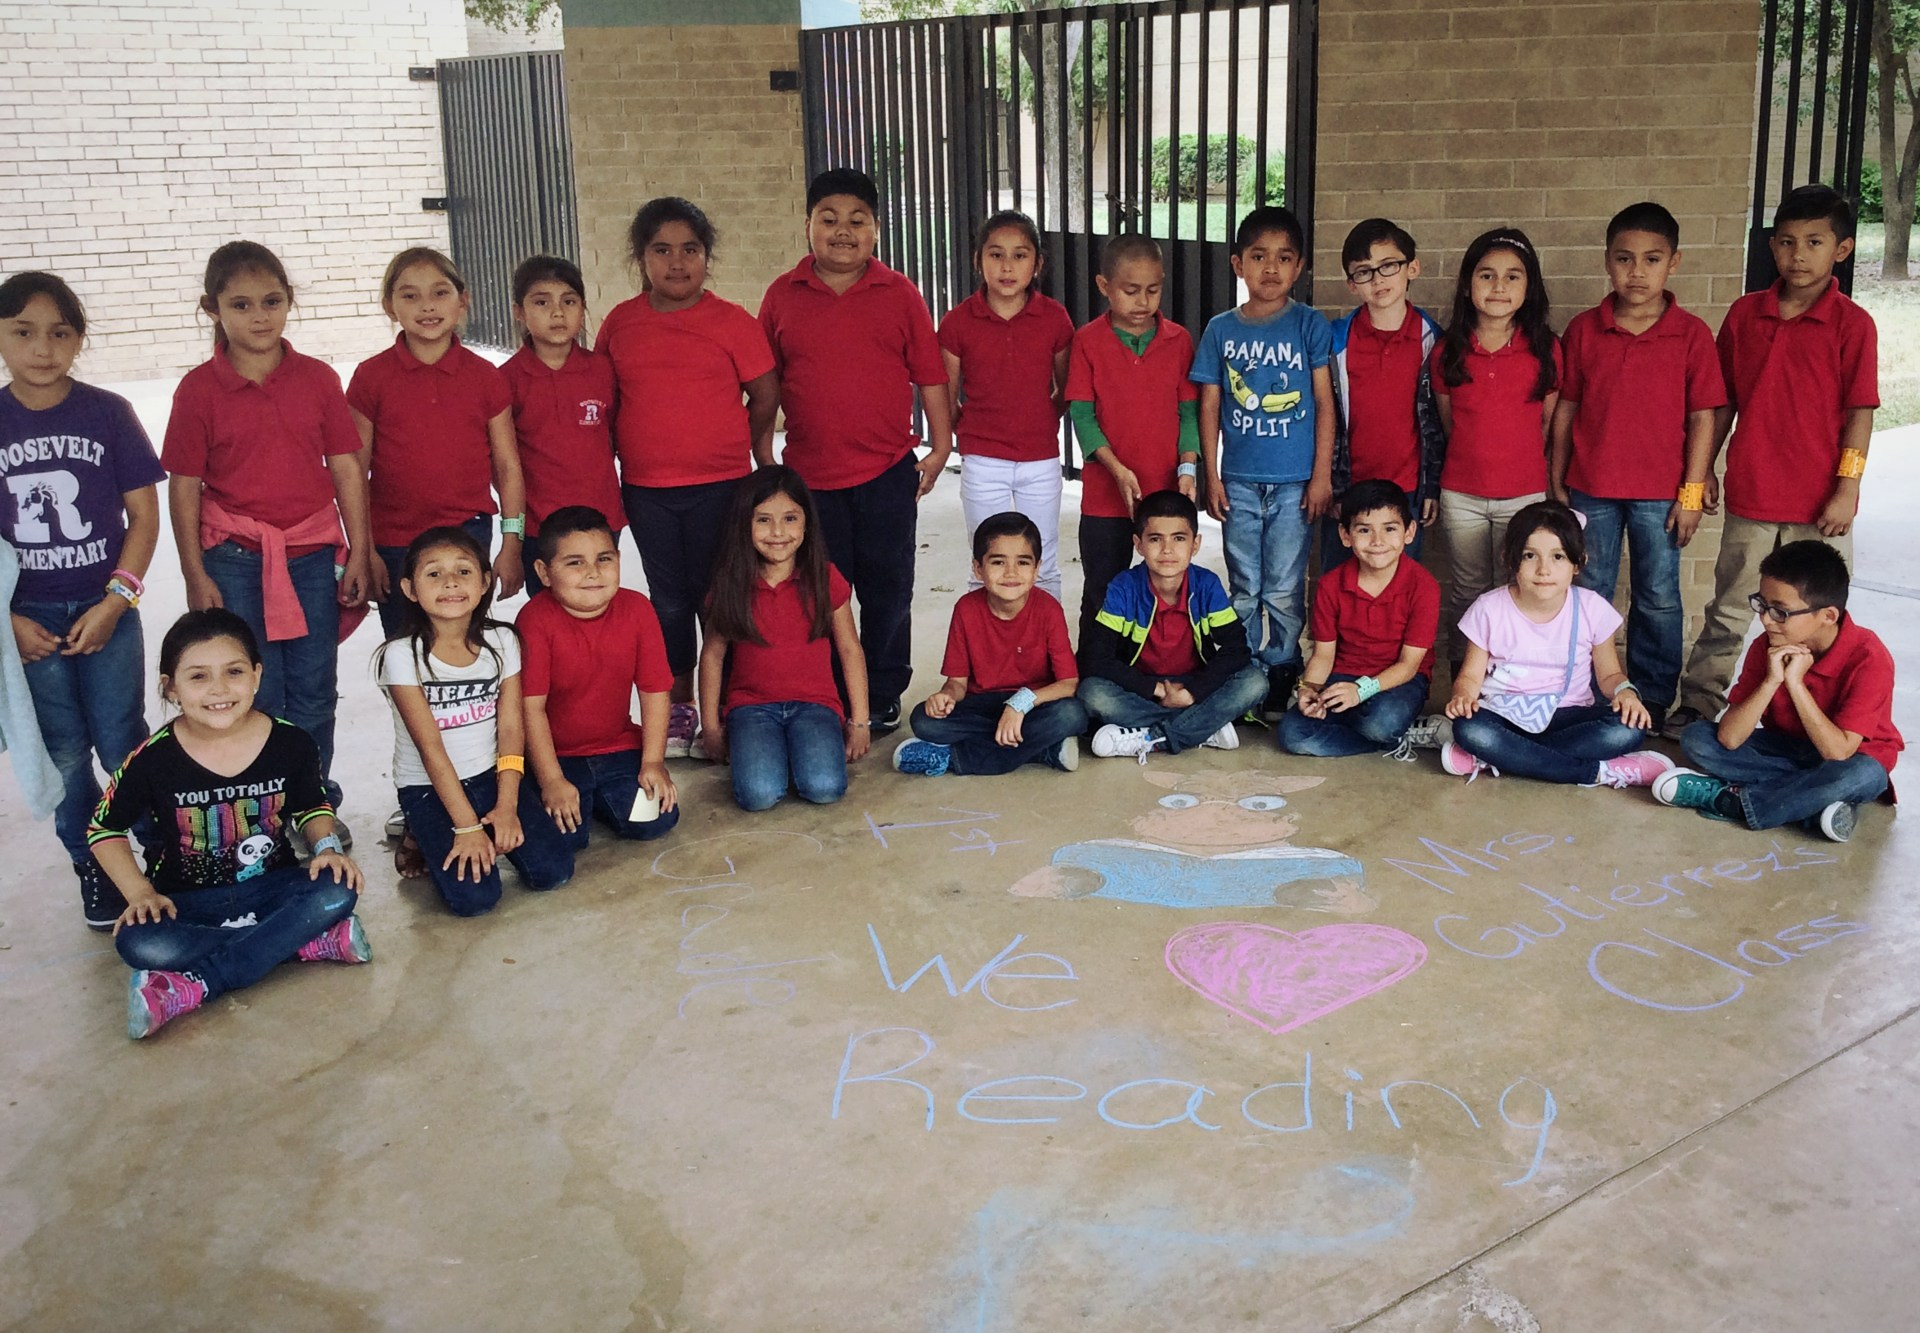 1st grade showing their love for reading